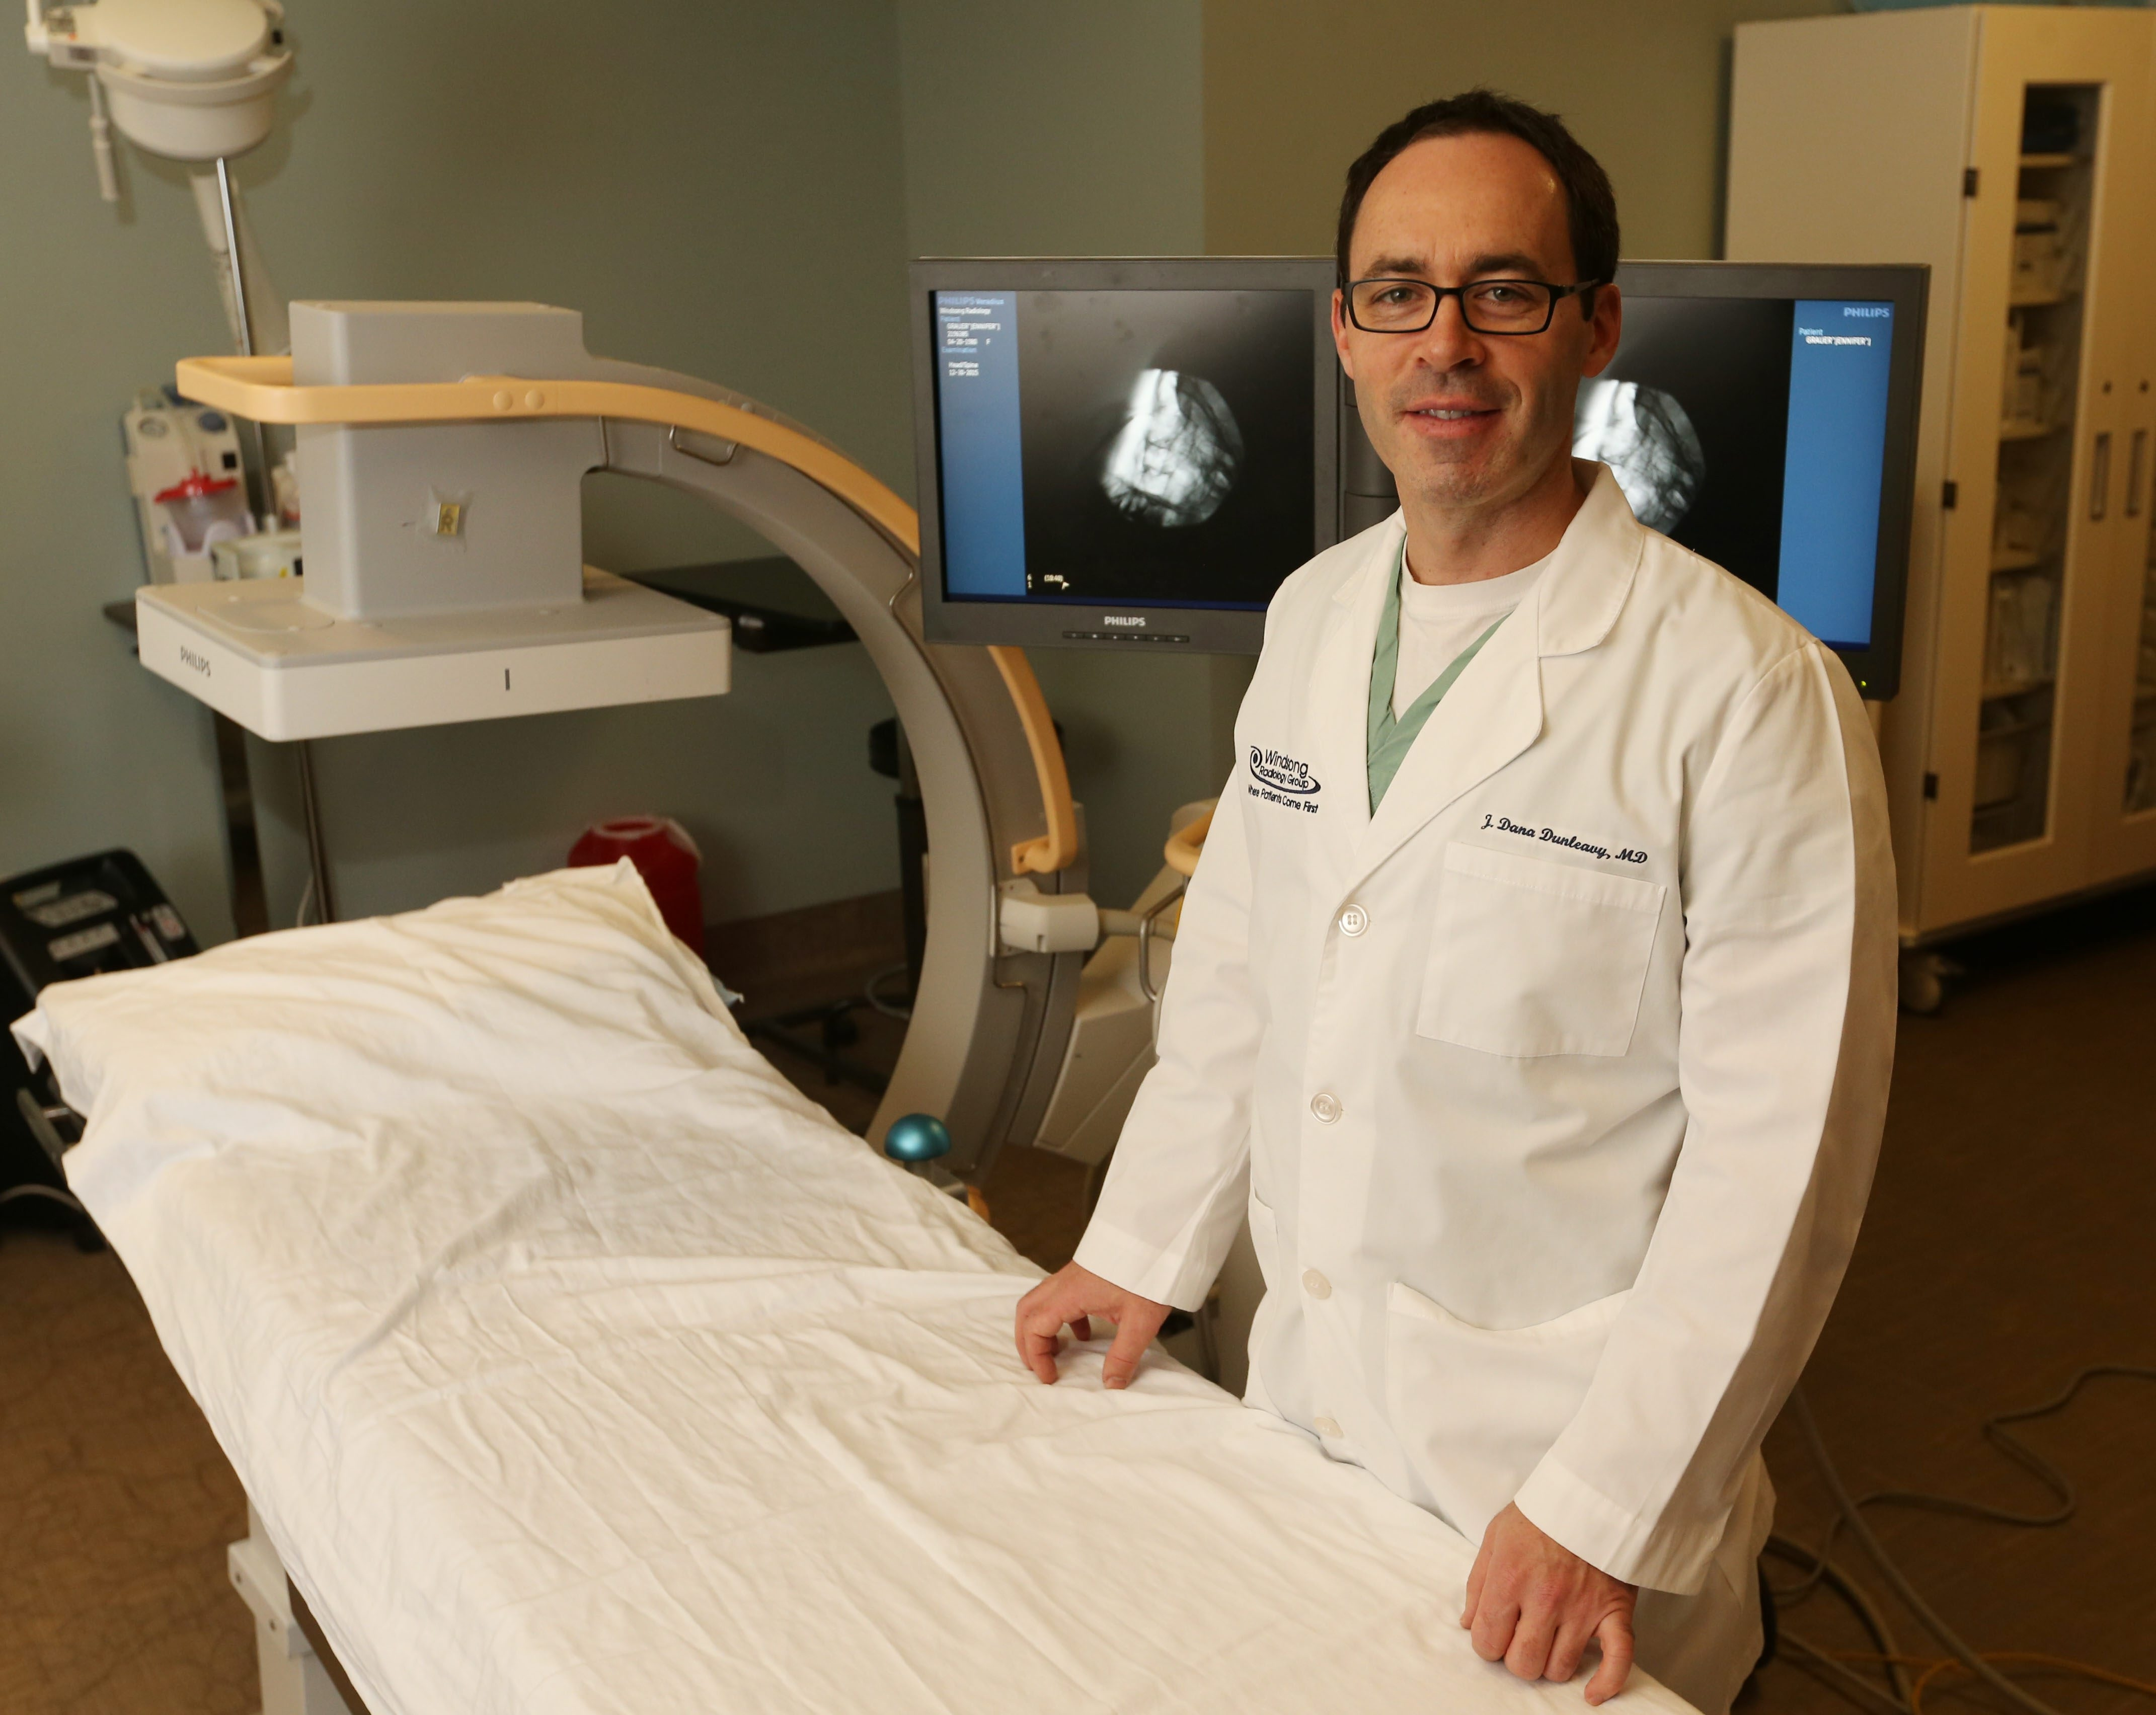 """""""You can put a catheter directly into a tumor as opposed to IV chemotherapy that treats the whole body, and by directing the medicine to the tumor you have less side effects."""" – Dr. J. Dana Dunleavy, Windsong Interventional Radiology Clinic"""